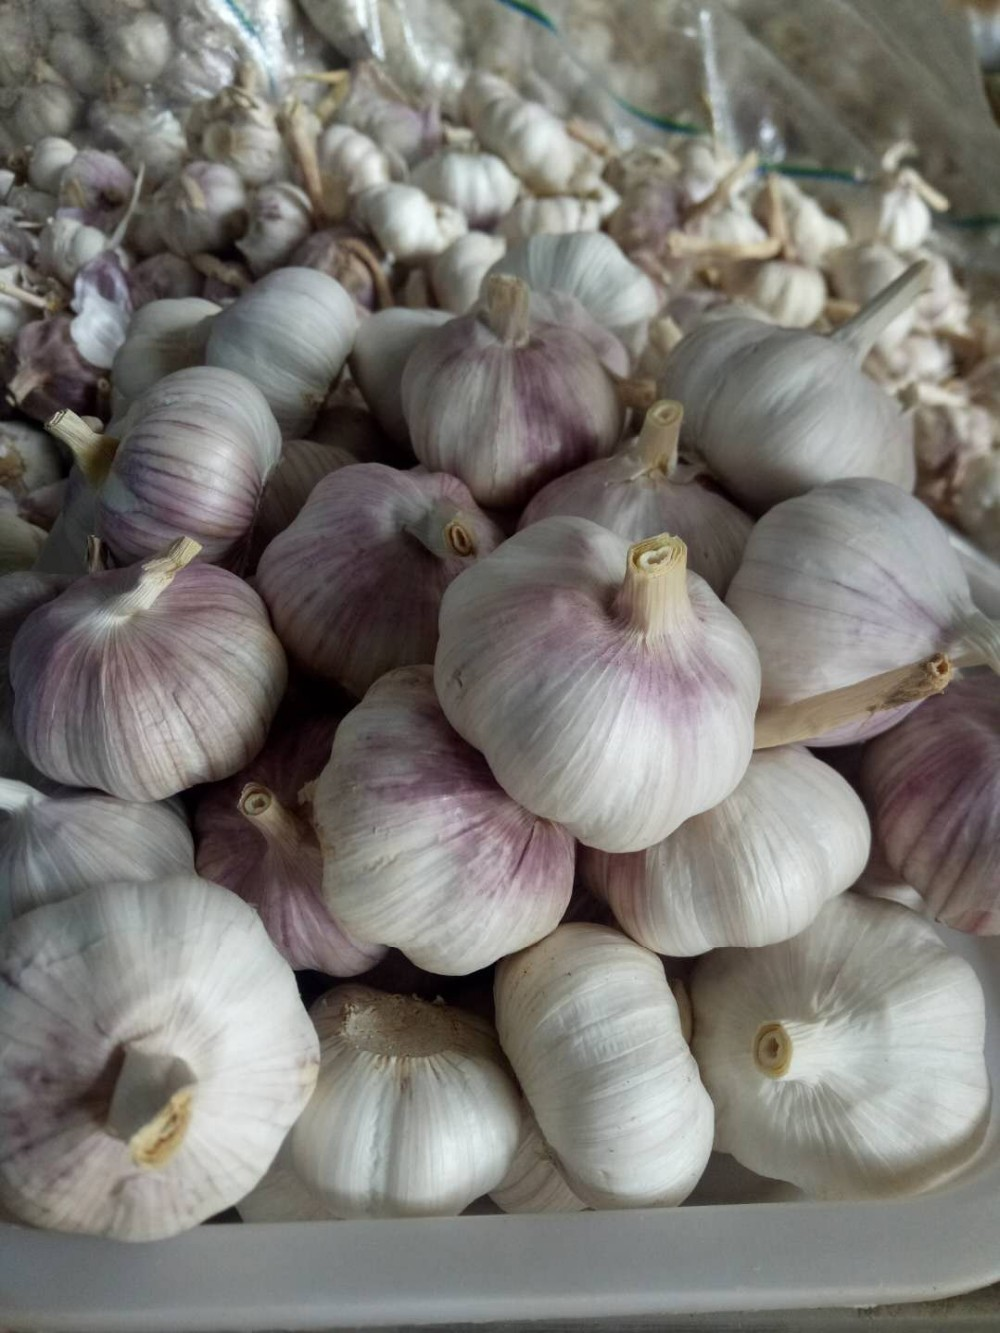 The cheapest and The smallest of garlic